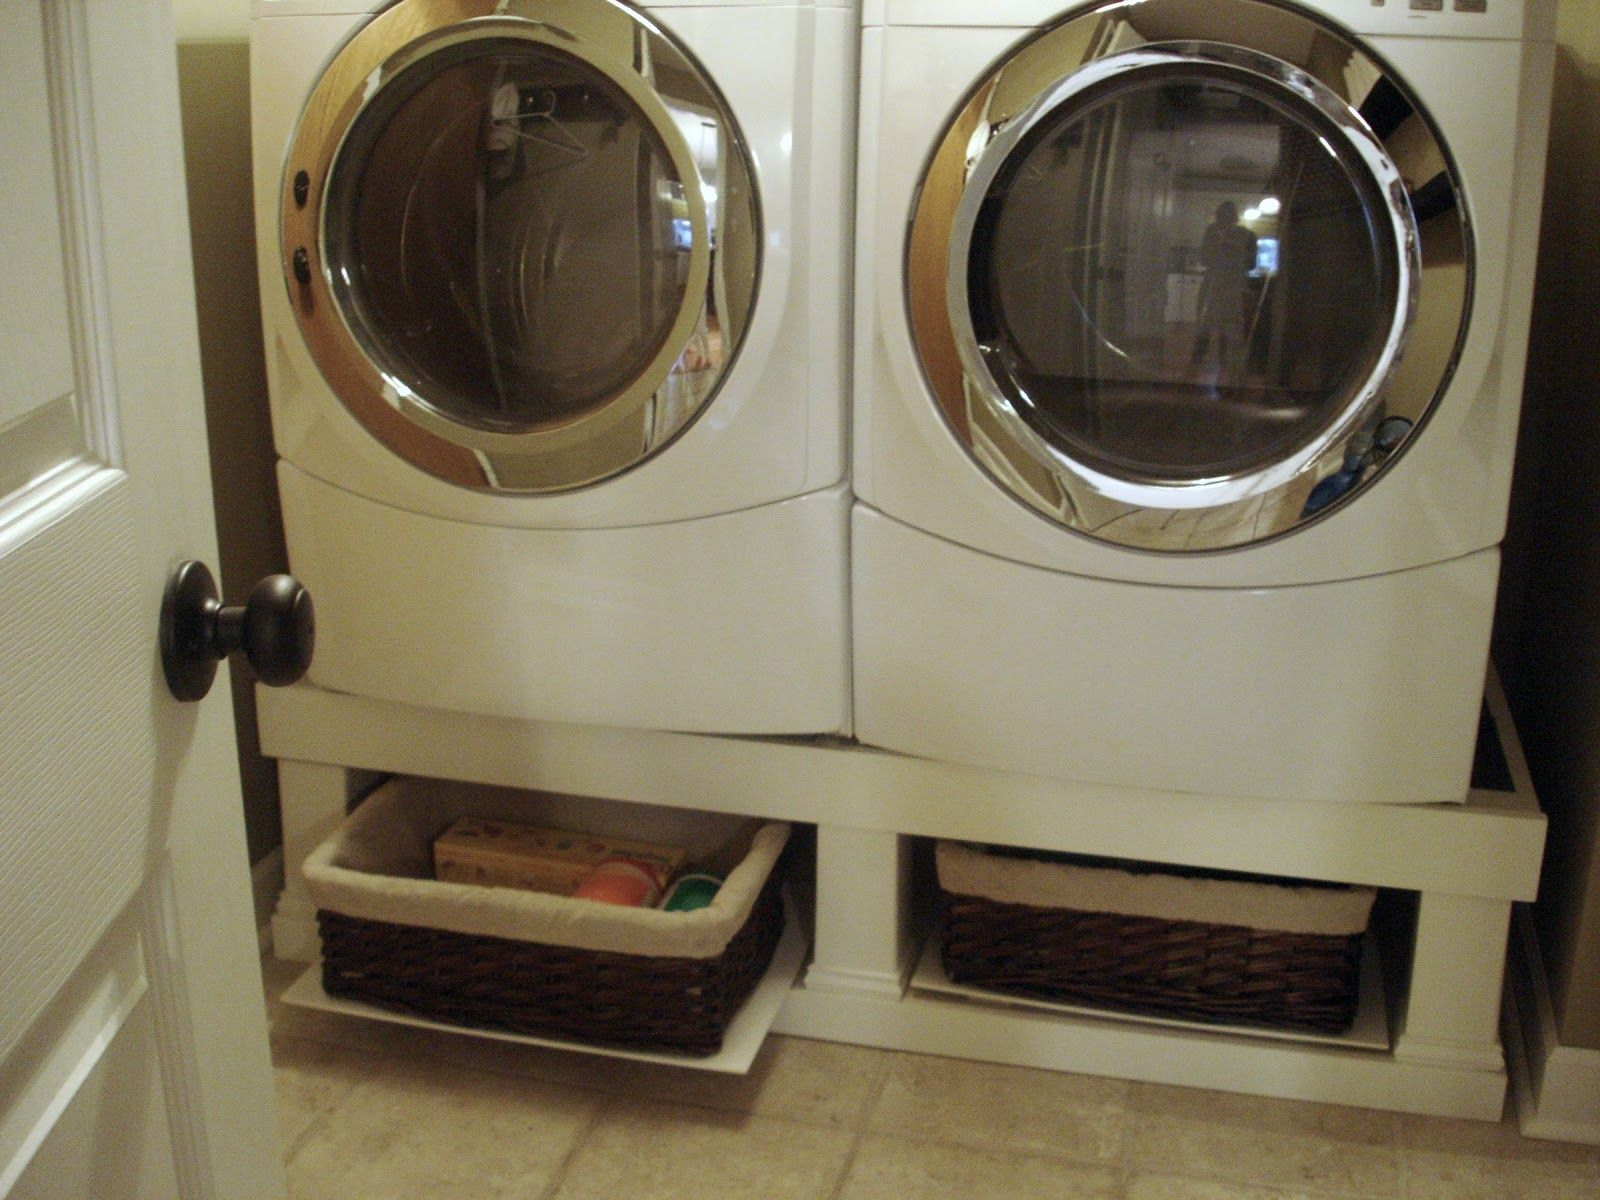 Crazy Wonderful Washer Dryer Stand Installed Front Load